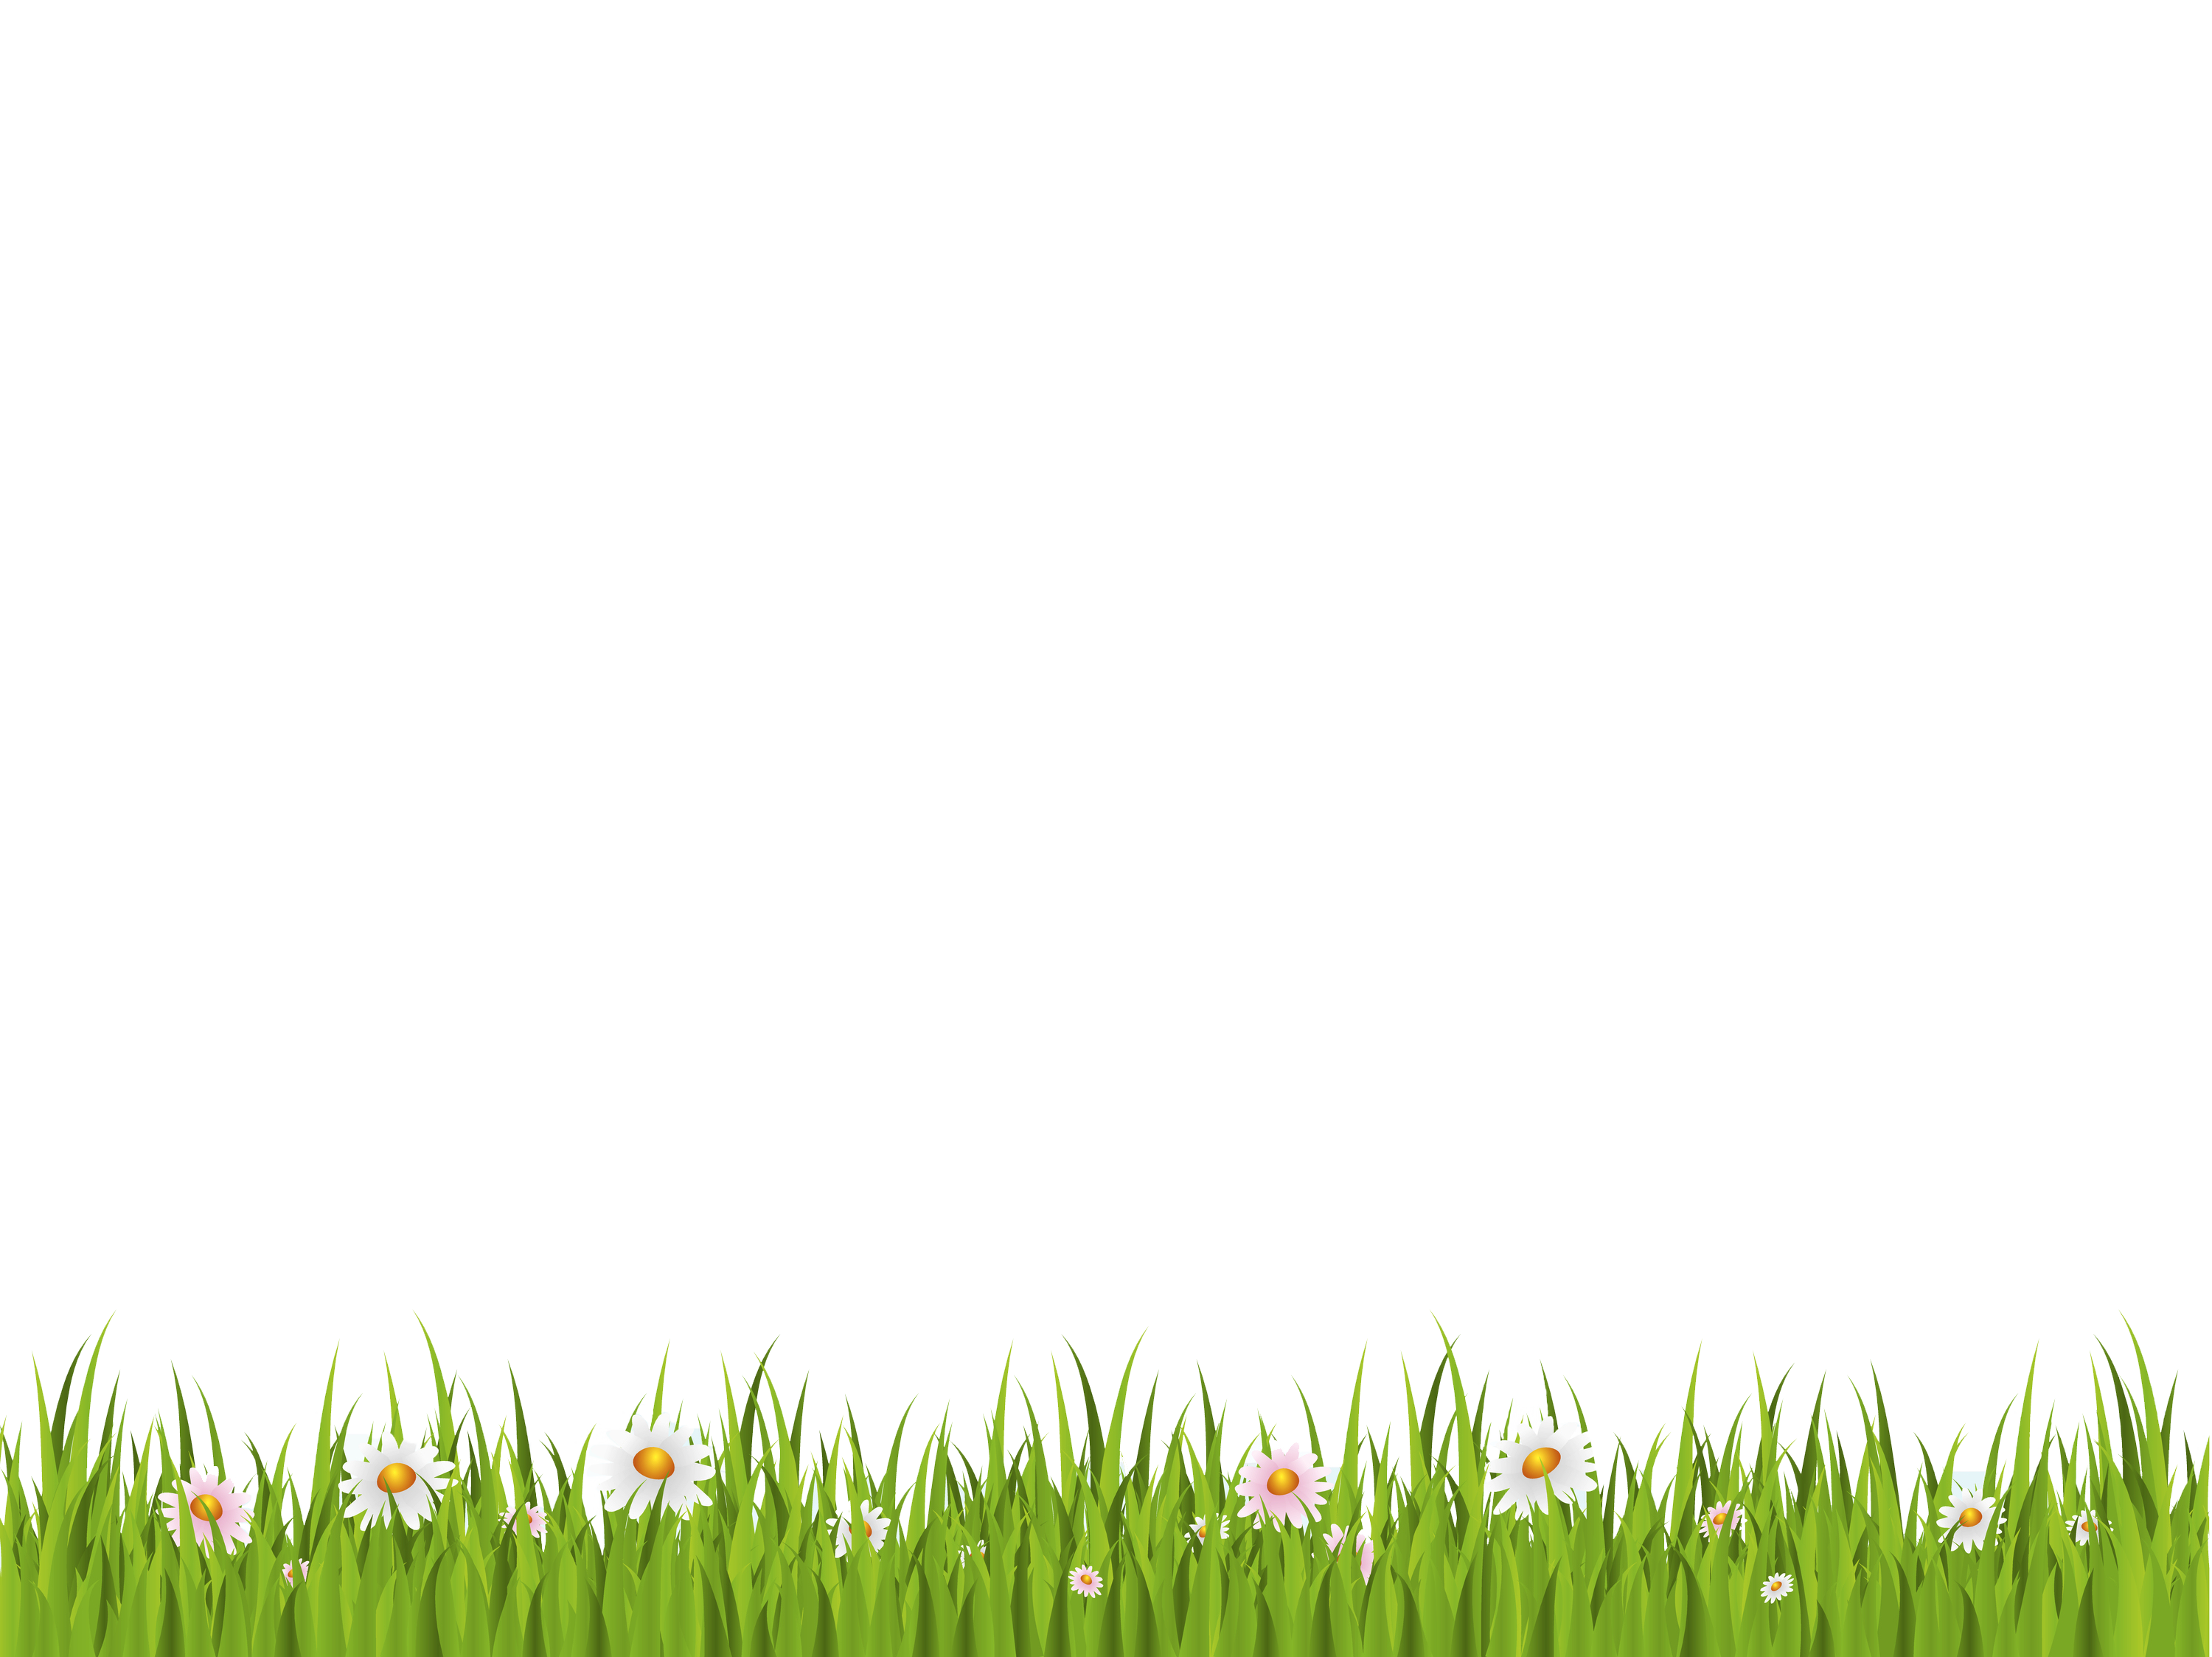 Green Grass On White Background Png image #4752